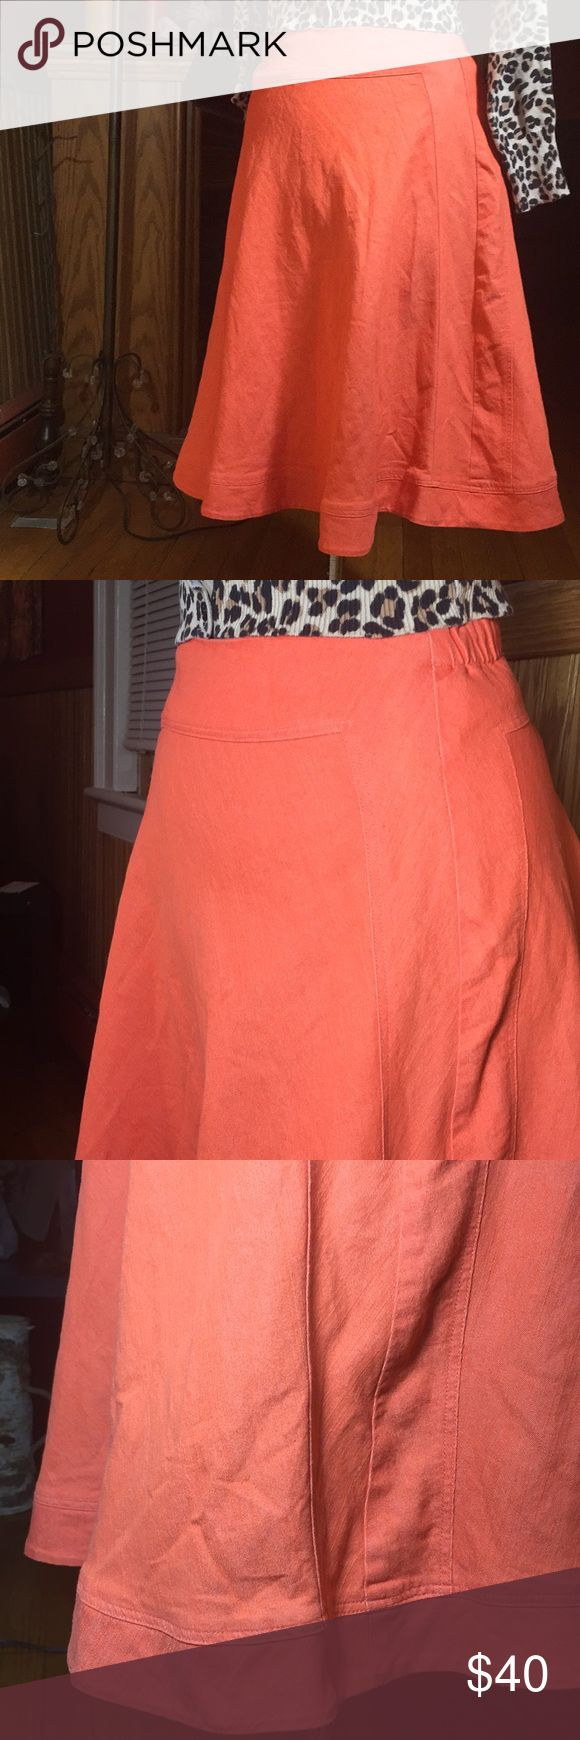 """A-line skirt Funky bright salmon orange size Small Great condition! No noted flaws, other than a slight stain on the inside of the hemline. It's not a visible stain when wearing it. Waist 12"""" laying flat, with an additional 2"""" give with elastic waistband :) This is on the Small side of a Small  This material has a linen feel to it. Fabric has a nice stretch too. 65% Cotton 33% Poly 2% Spandex REFER TO LAST PHOTO FOR ACCURACY OF COLOR Color is a bright salmon orange  Any questions just ask :)…"""